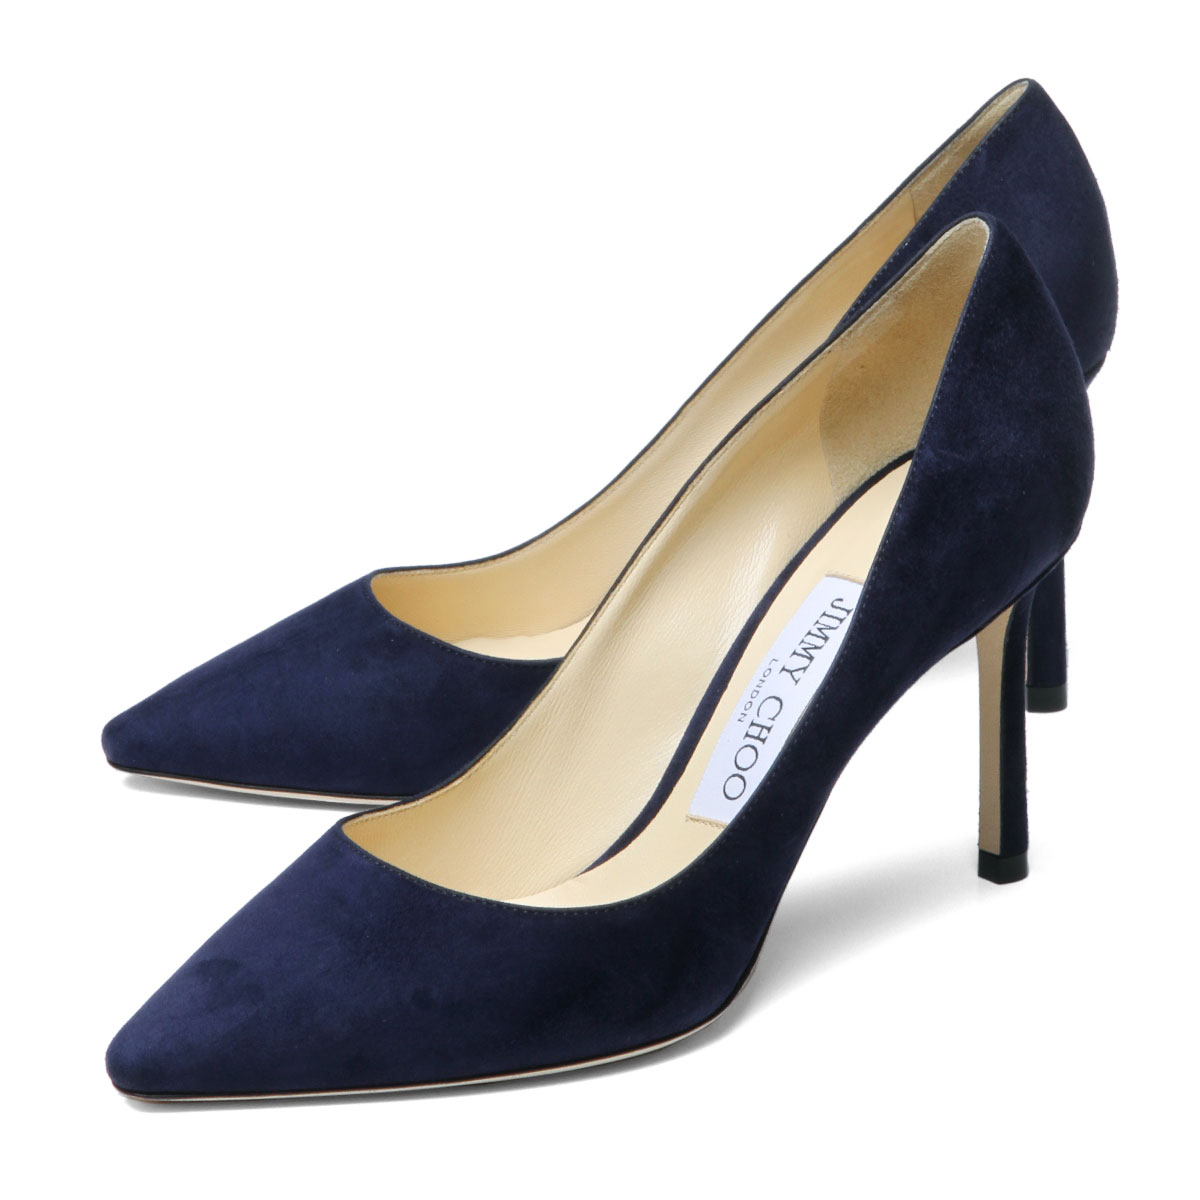 authentic quality on wholesale a few days away ジミーチュウ JIMMY CHOO shoes Lady's ROMY 85 SUE pointed toe pumps ROMY Romi NAVY  dark blue